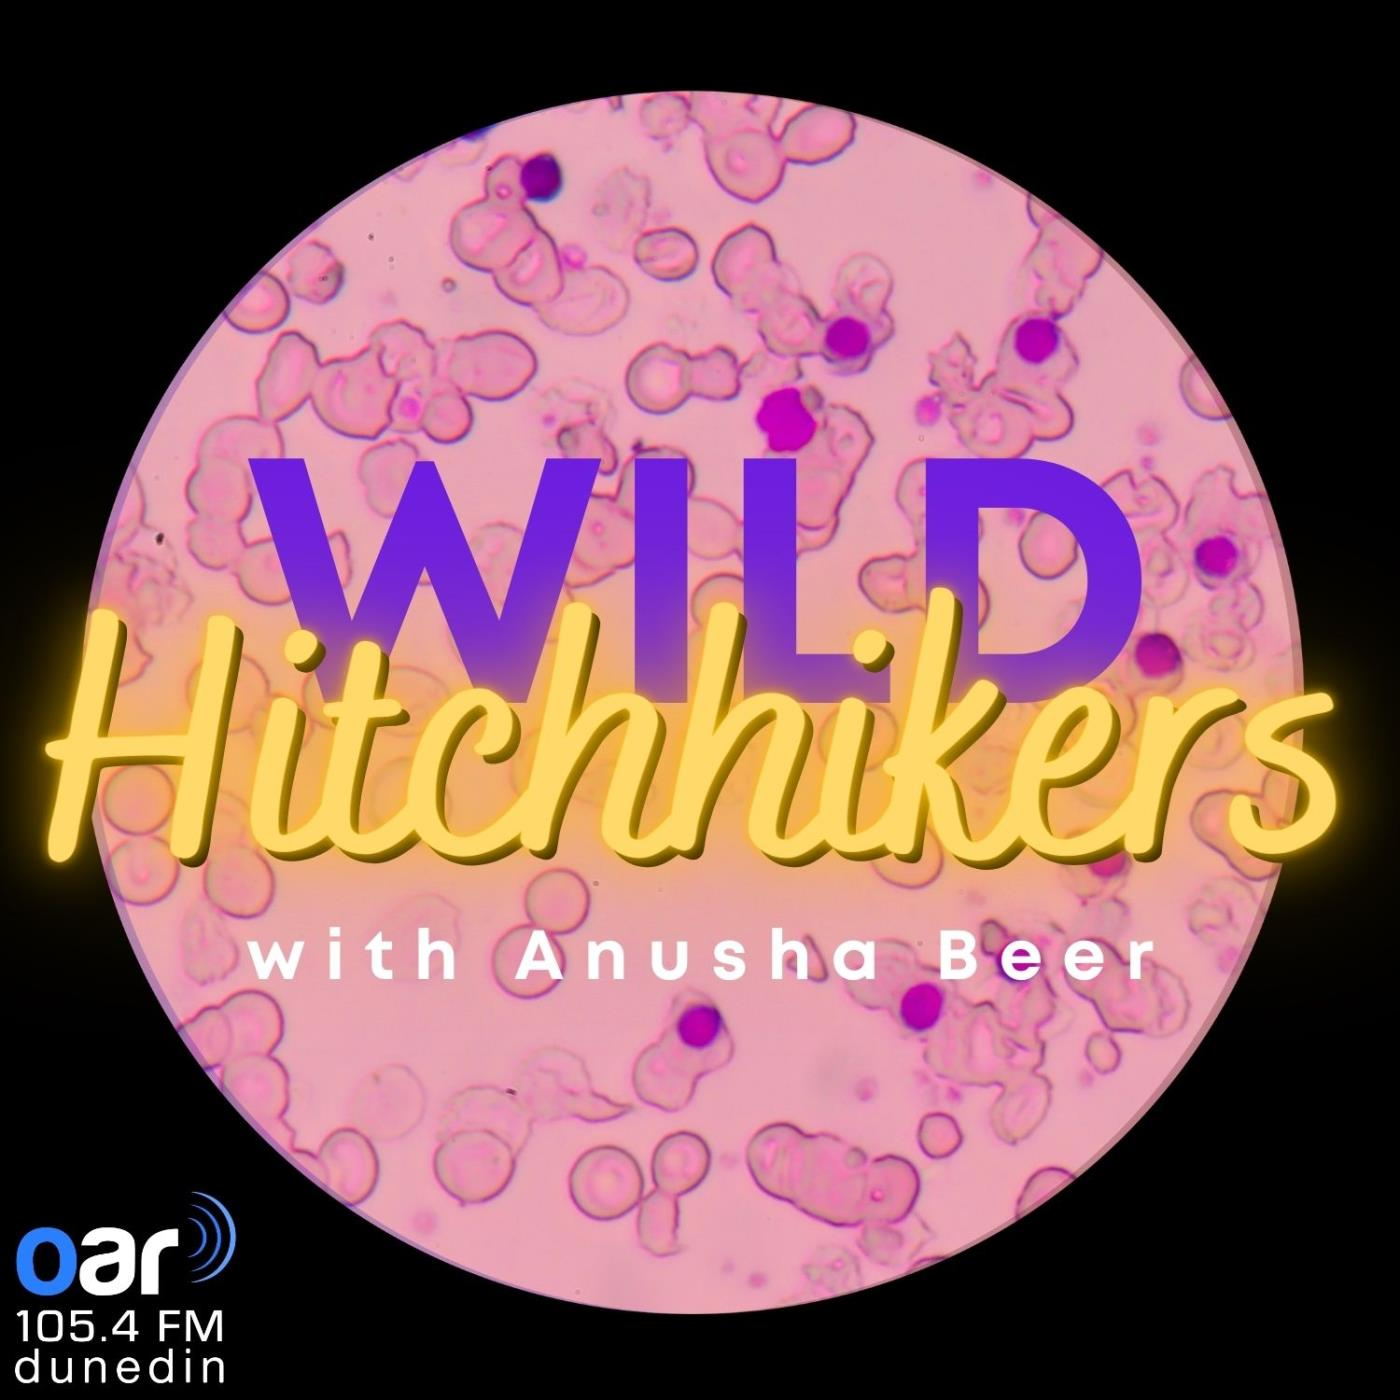 Wild Hitchhikers